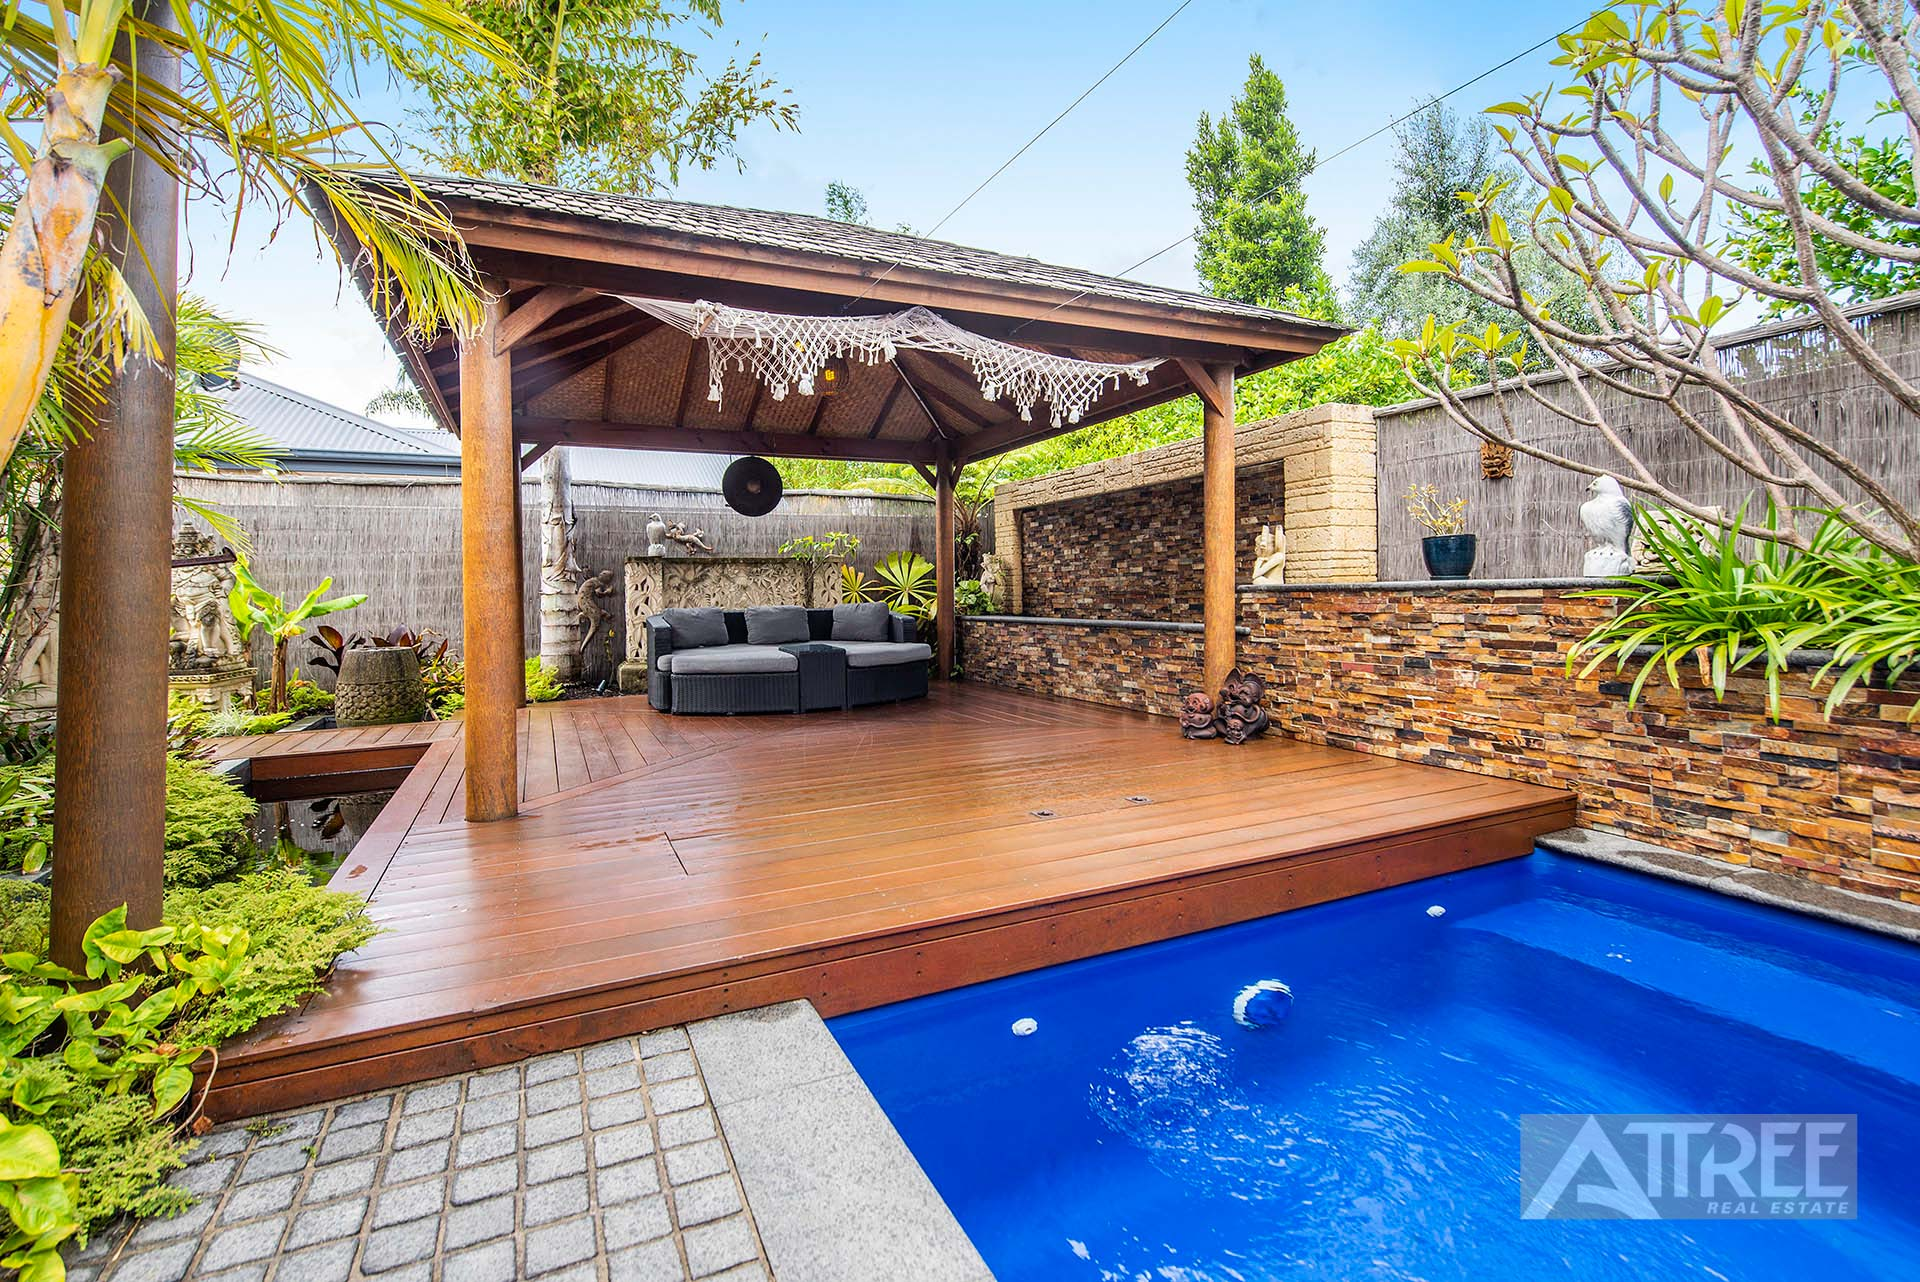 Property for sale in SOUTHERN RIVER, 28 Silkwood Street : Attree Real Estate